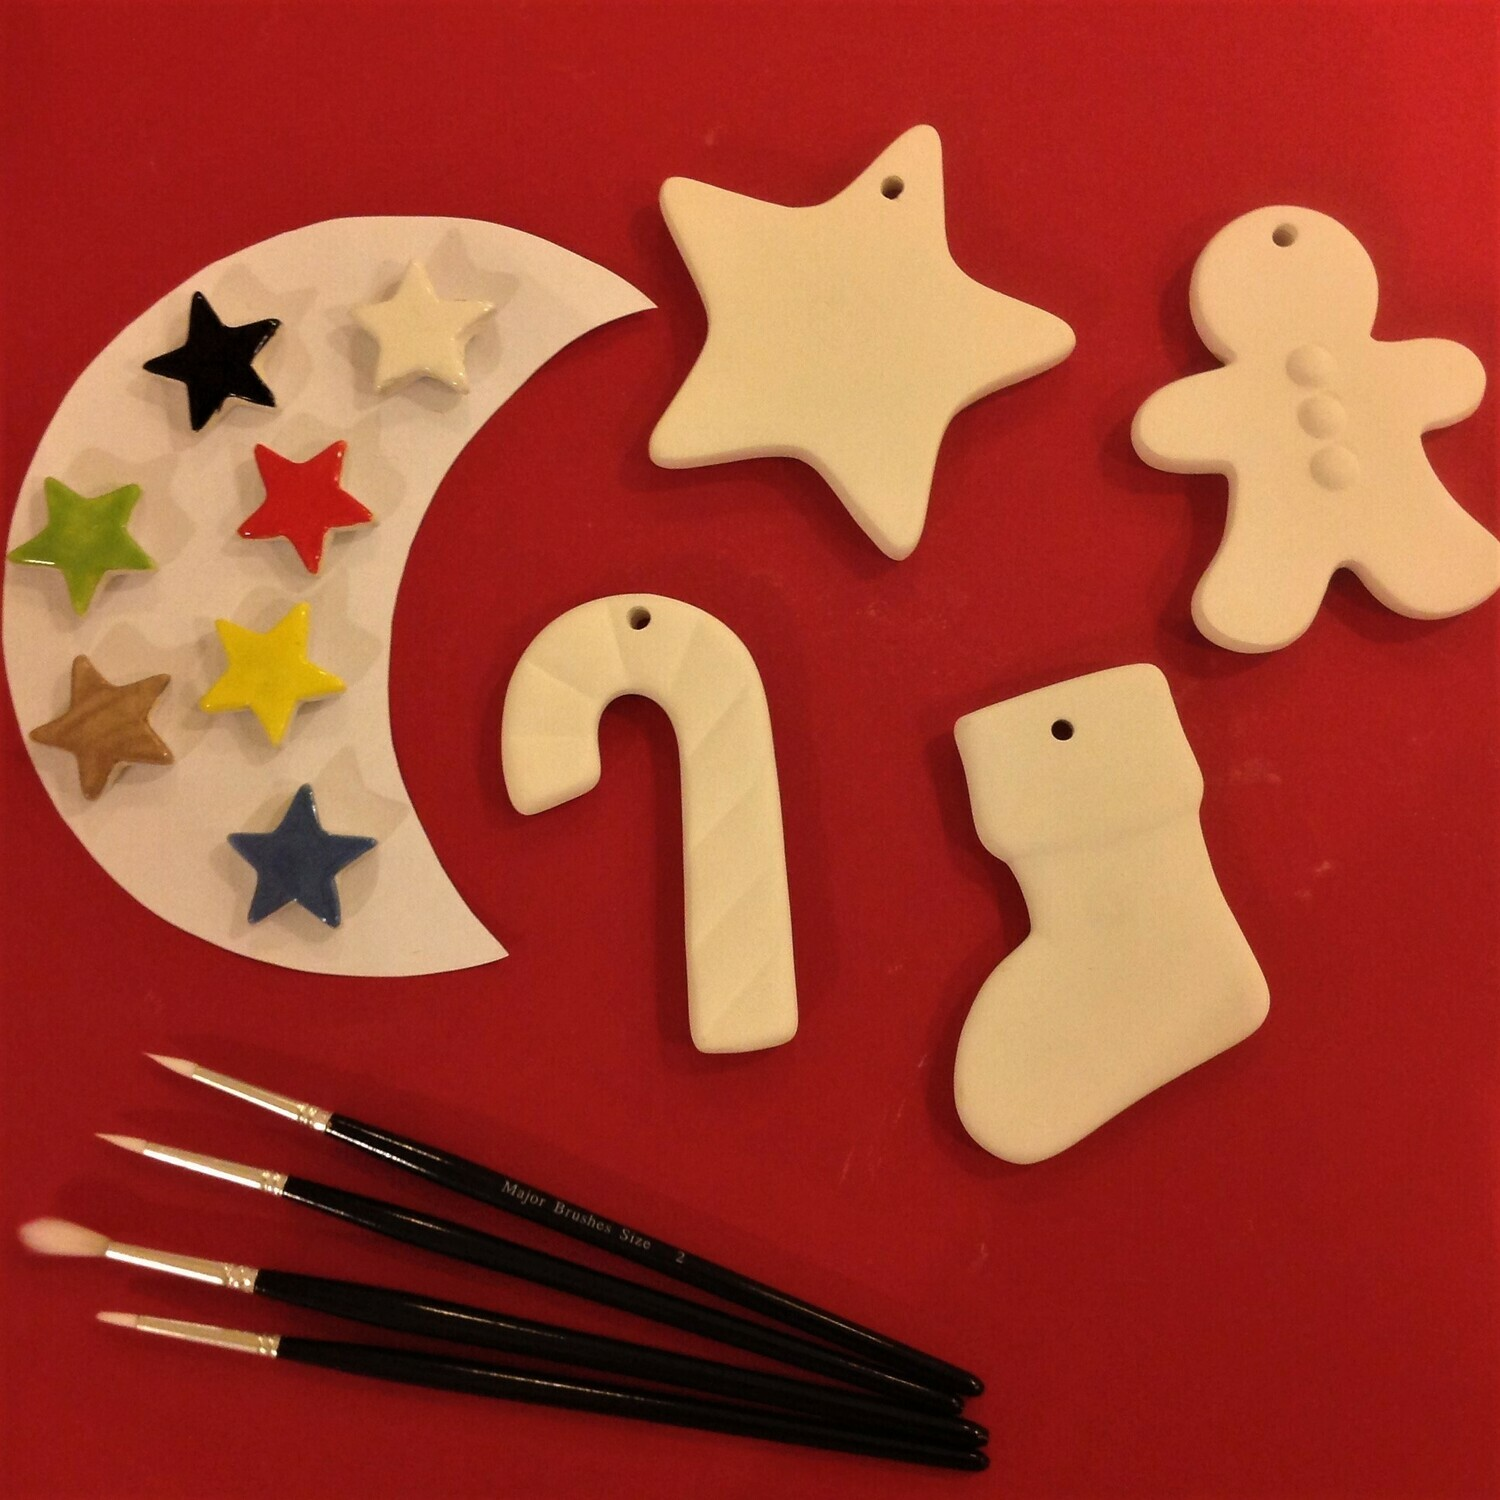 Gingerbread man, star, candy cane and stocking Christmas tree hangers